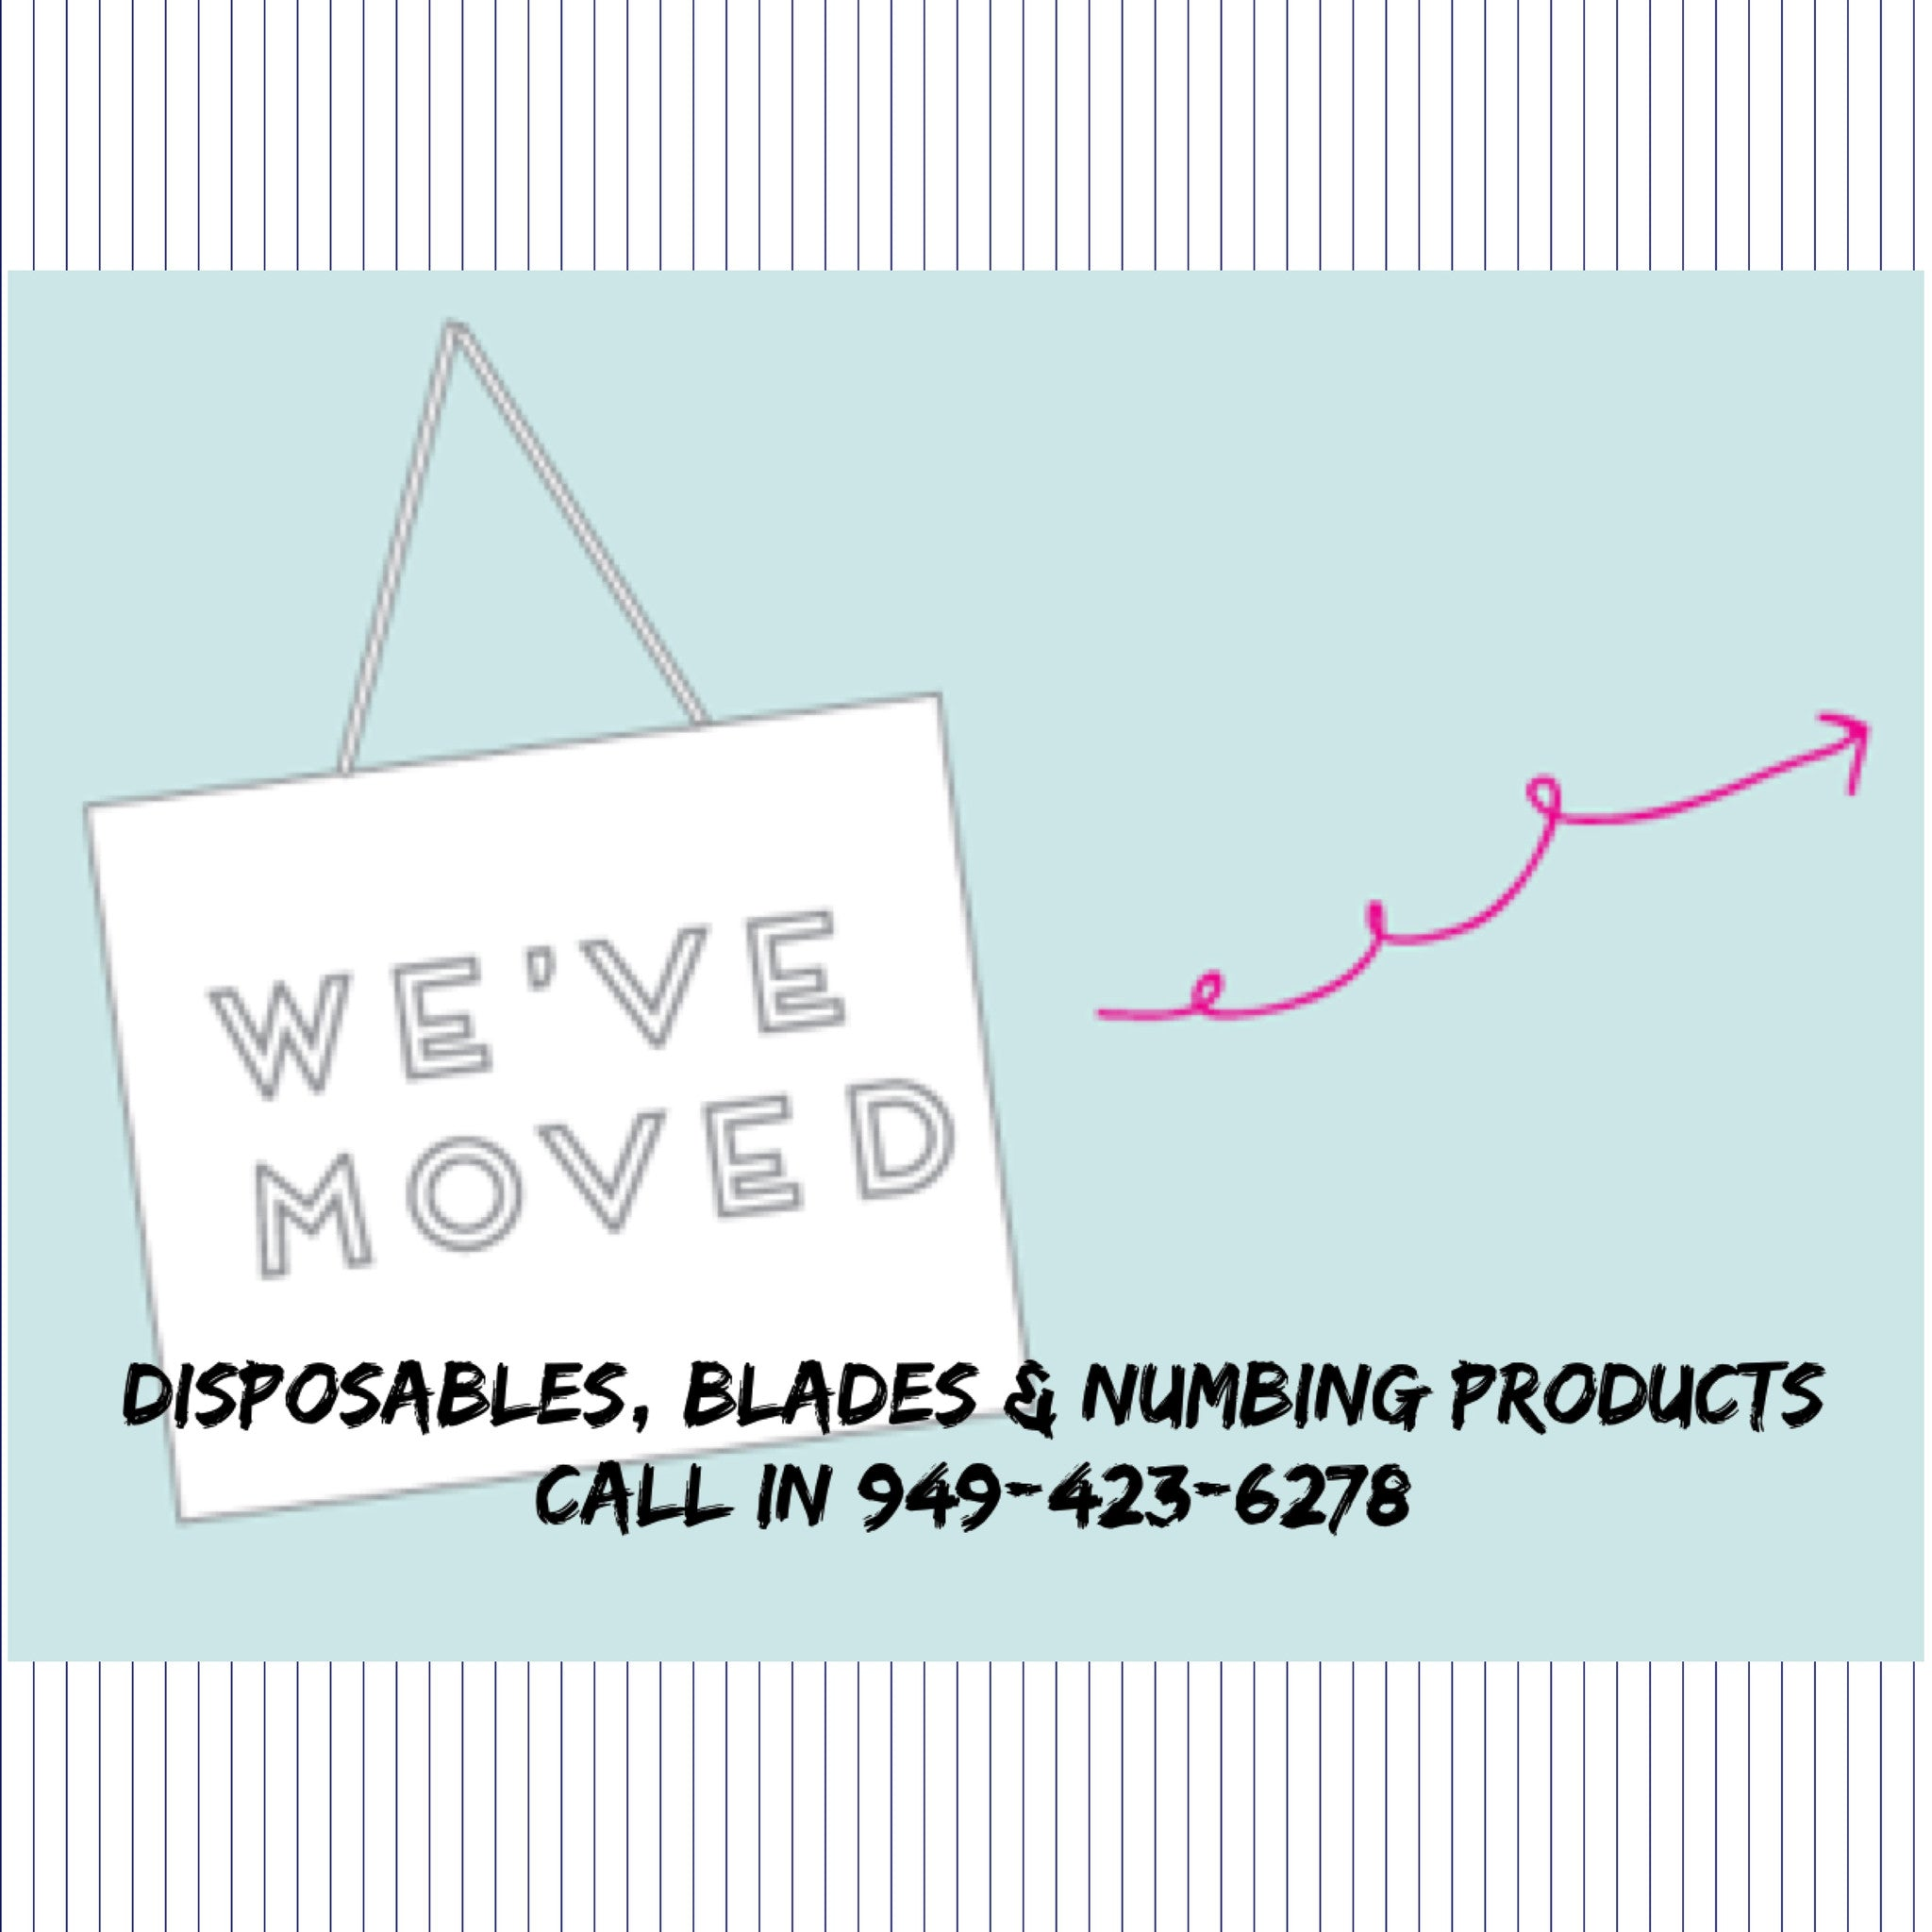 A: Blades, Disposables and Topical Numbing please call in 949-423-6278